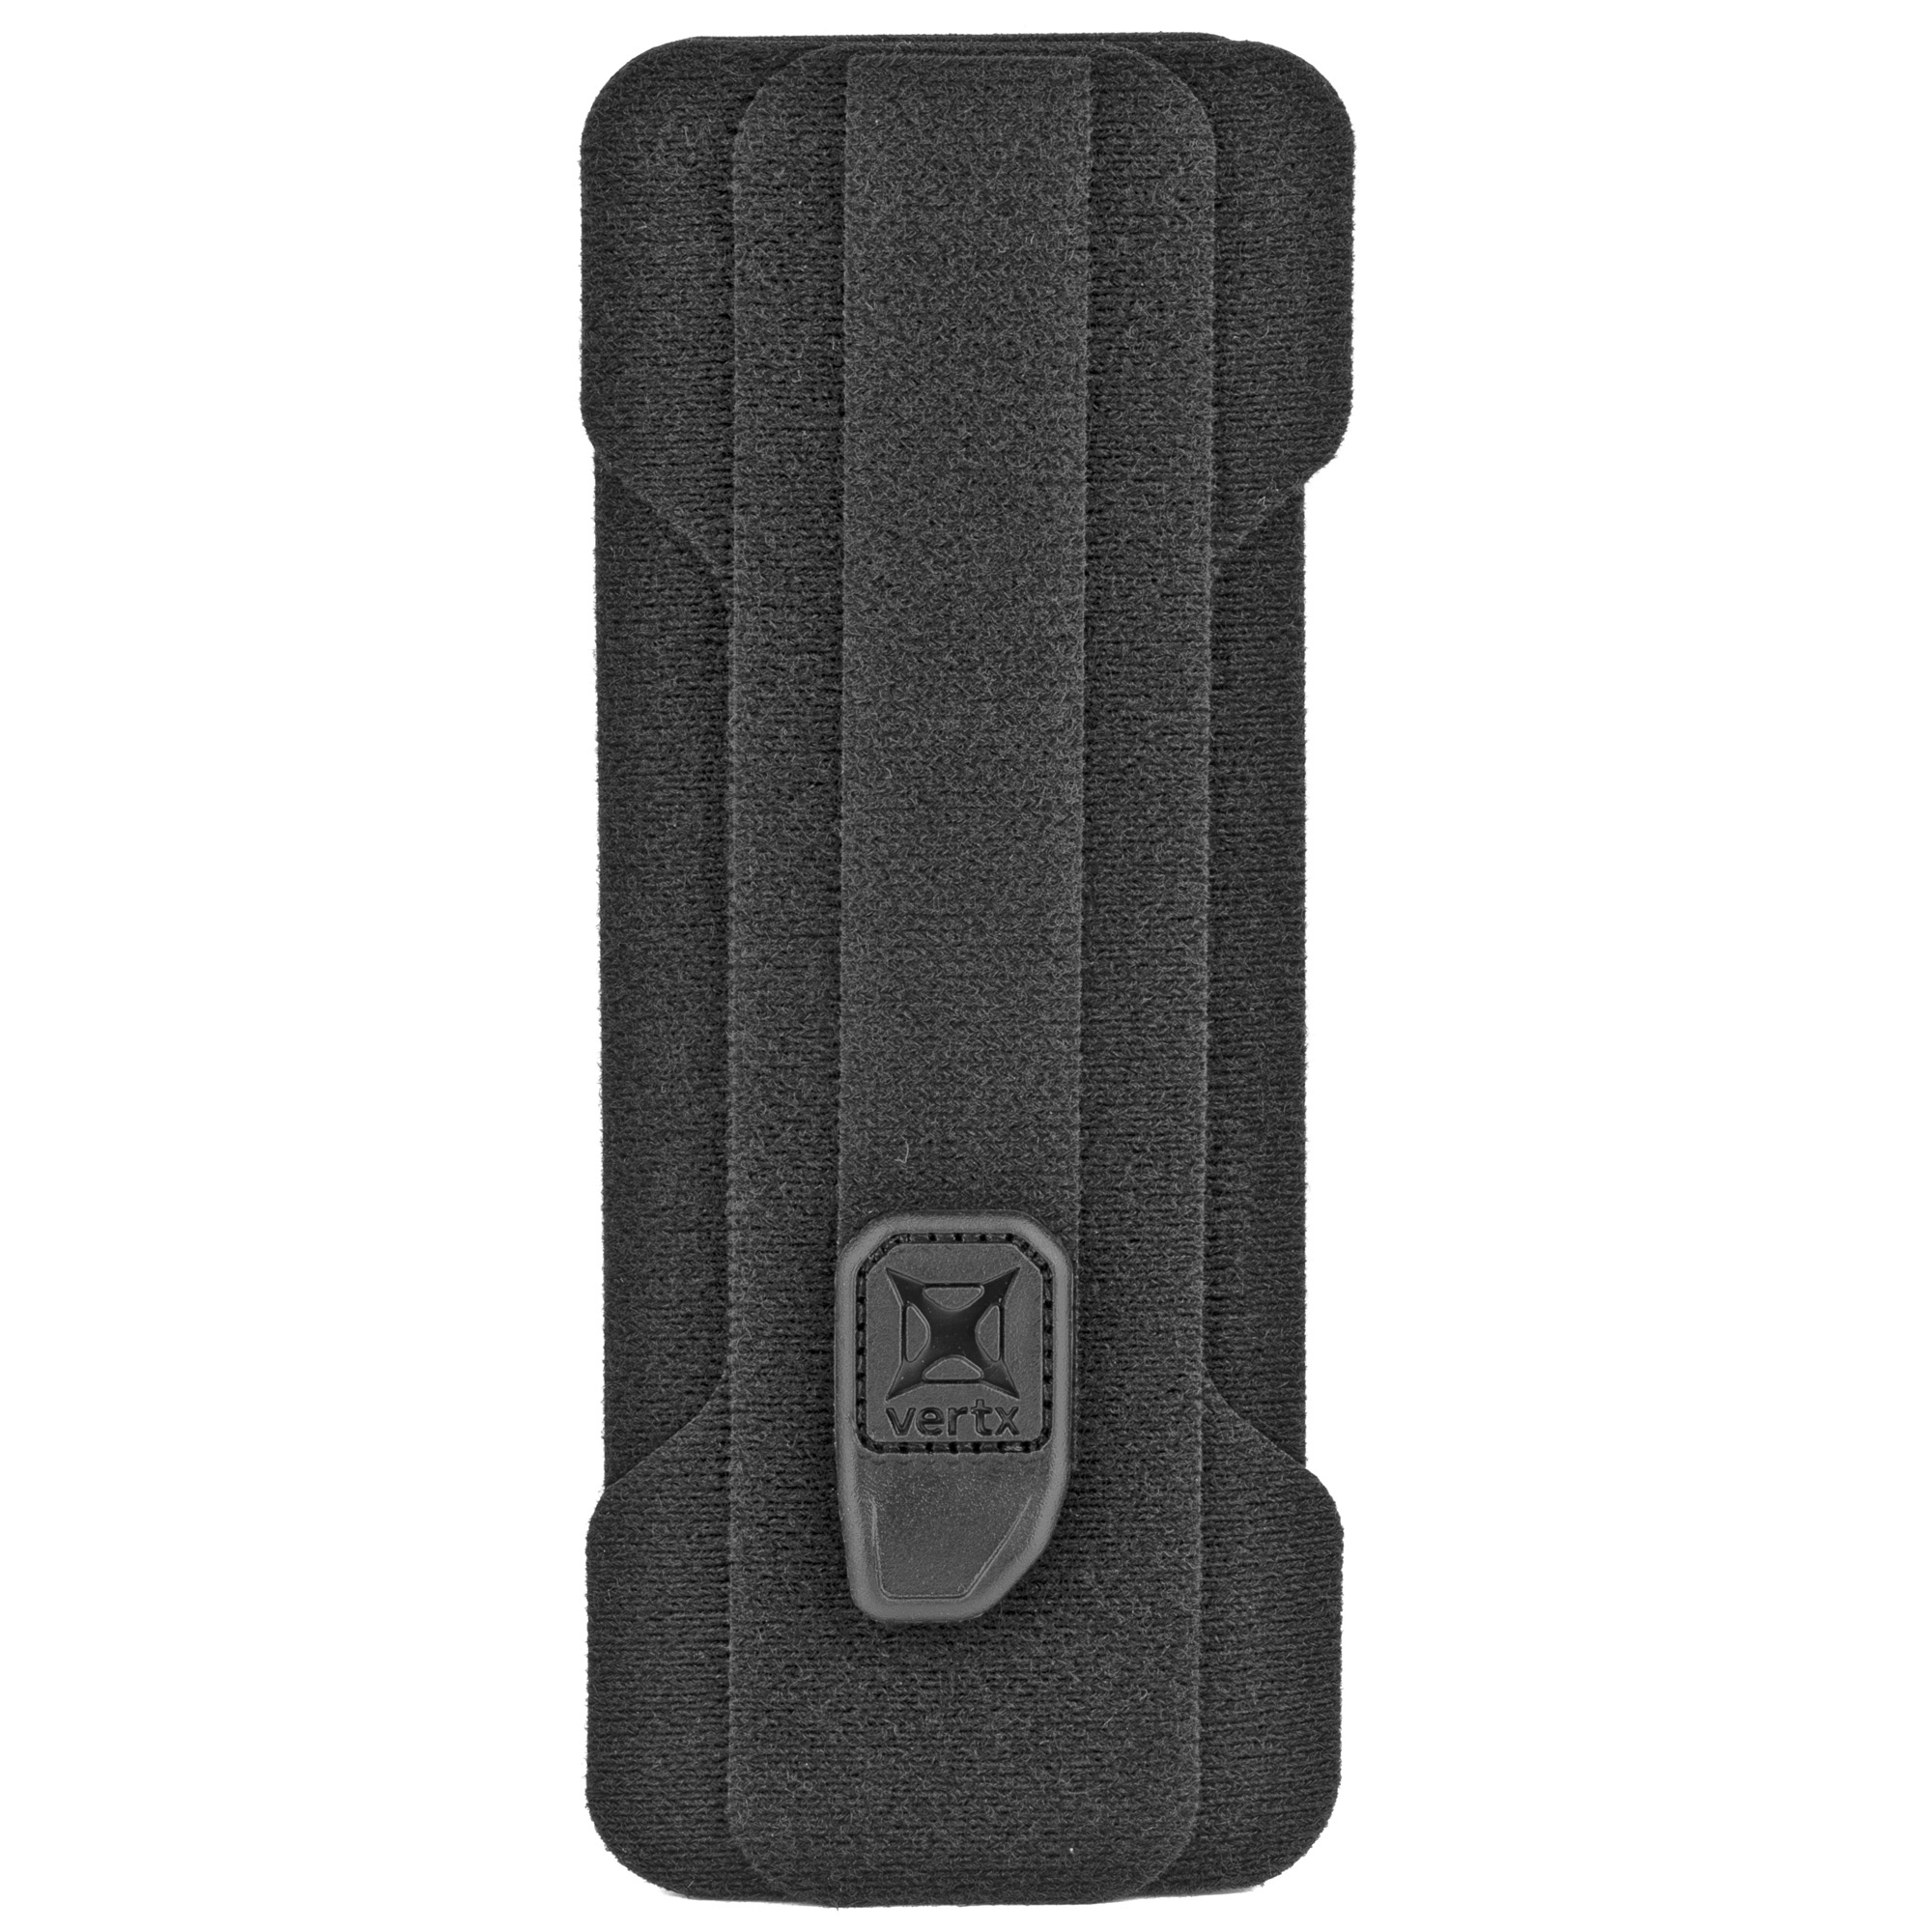 "Experience the unique storage options of Vertx(R) Tactigami with the MAK LOK accessory system. MAK stands for MAGs and Kit"" meaning their patent pending wrap adapts to fit any size gear"" from MAGs to flashlights"" cell phones and more. Uniquely"" the MAK LOK features an additional strap for securing gear in place. Built from Velcro(R) One-Wrap(R)"" this accessory piece literally wraps around your item for a completely customized fit"" then attaches to loop panel for unparalleled organizational capability. Pair with any of the Vertx(R) packs and bags for everyday carry options and ultimate concealment. The MAK LOK is sized to fit larger items such as rifle magazines"" smartphones and medical kits but can be adjusted to fit smaller items."